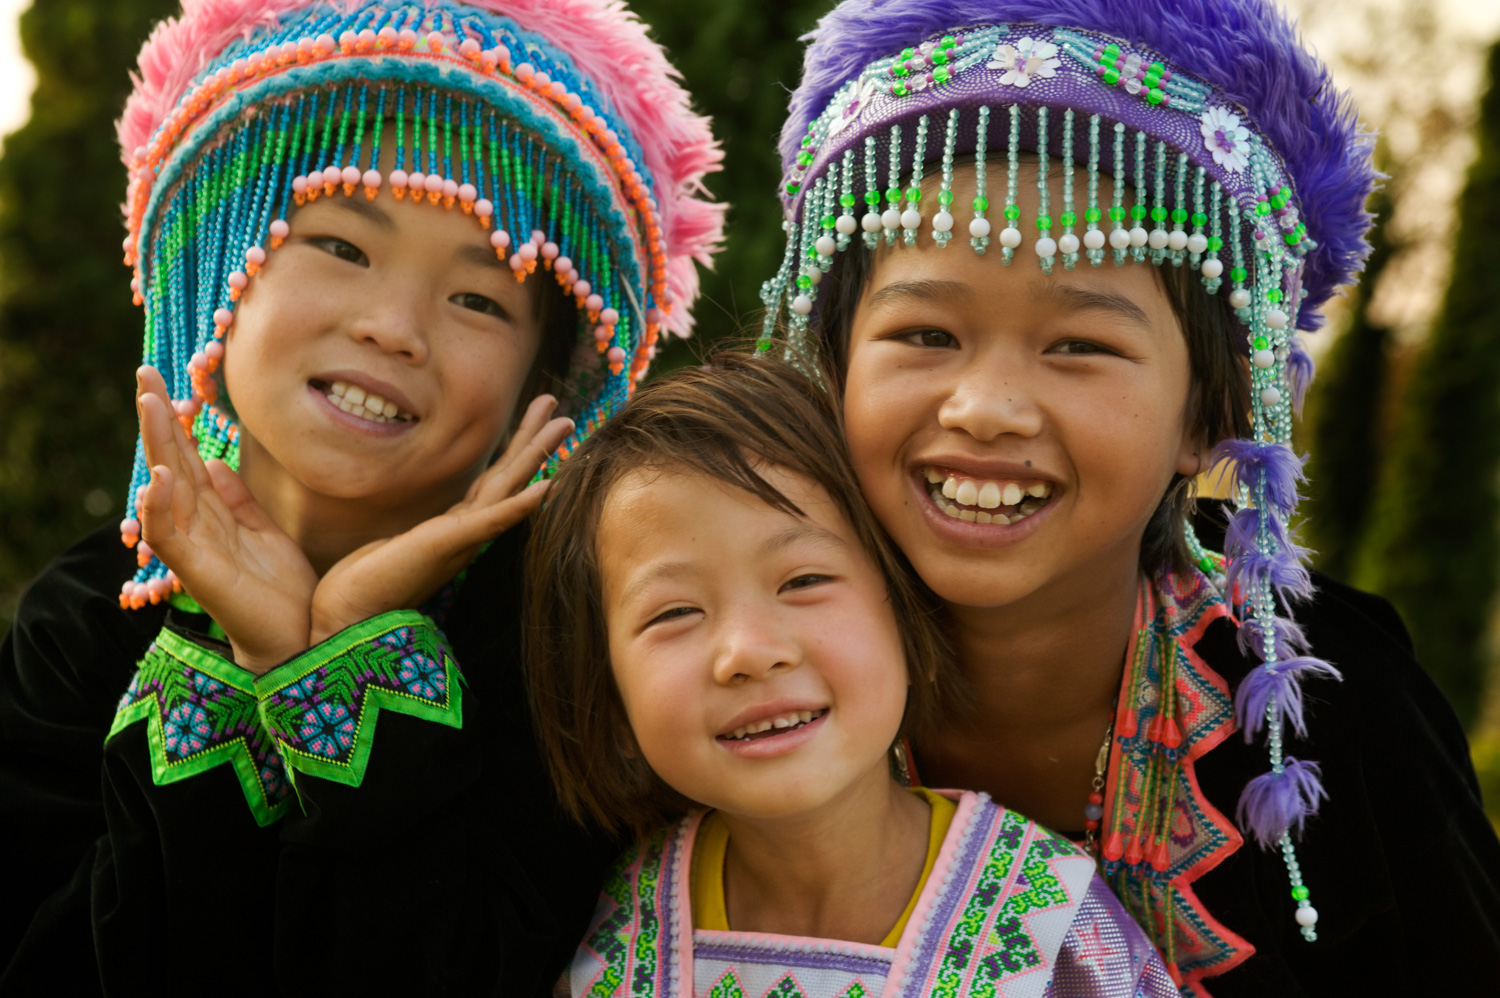 © Kevin Landwer-Johan The Best Kind of People to Photograph While Traveling Hmong Hill Tribe Girls